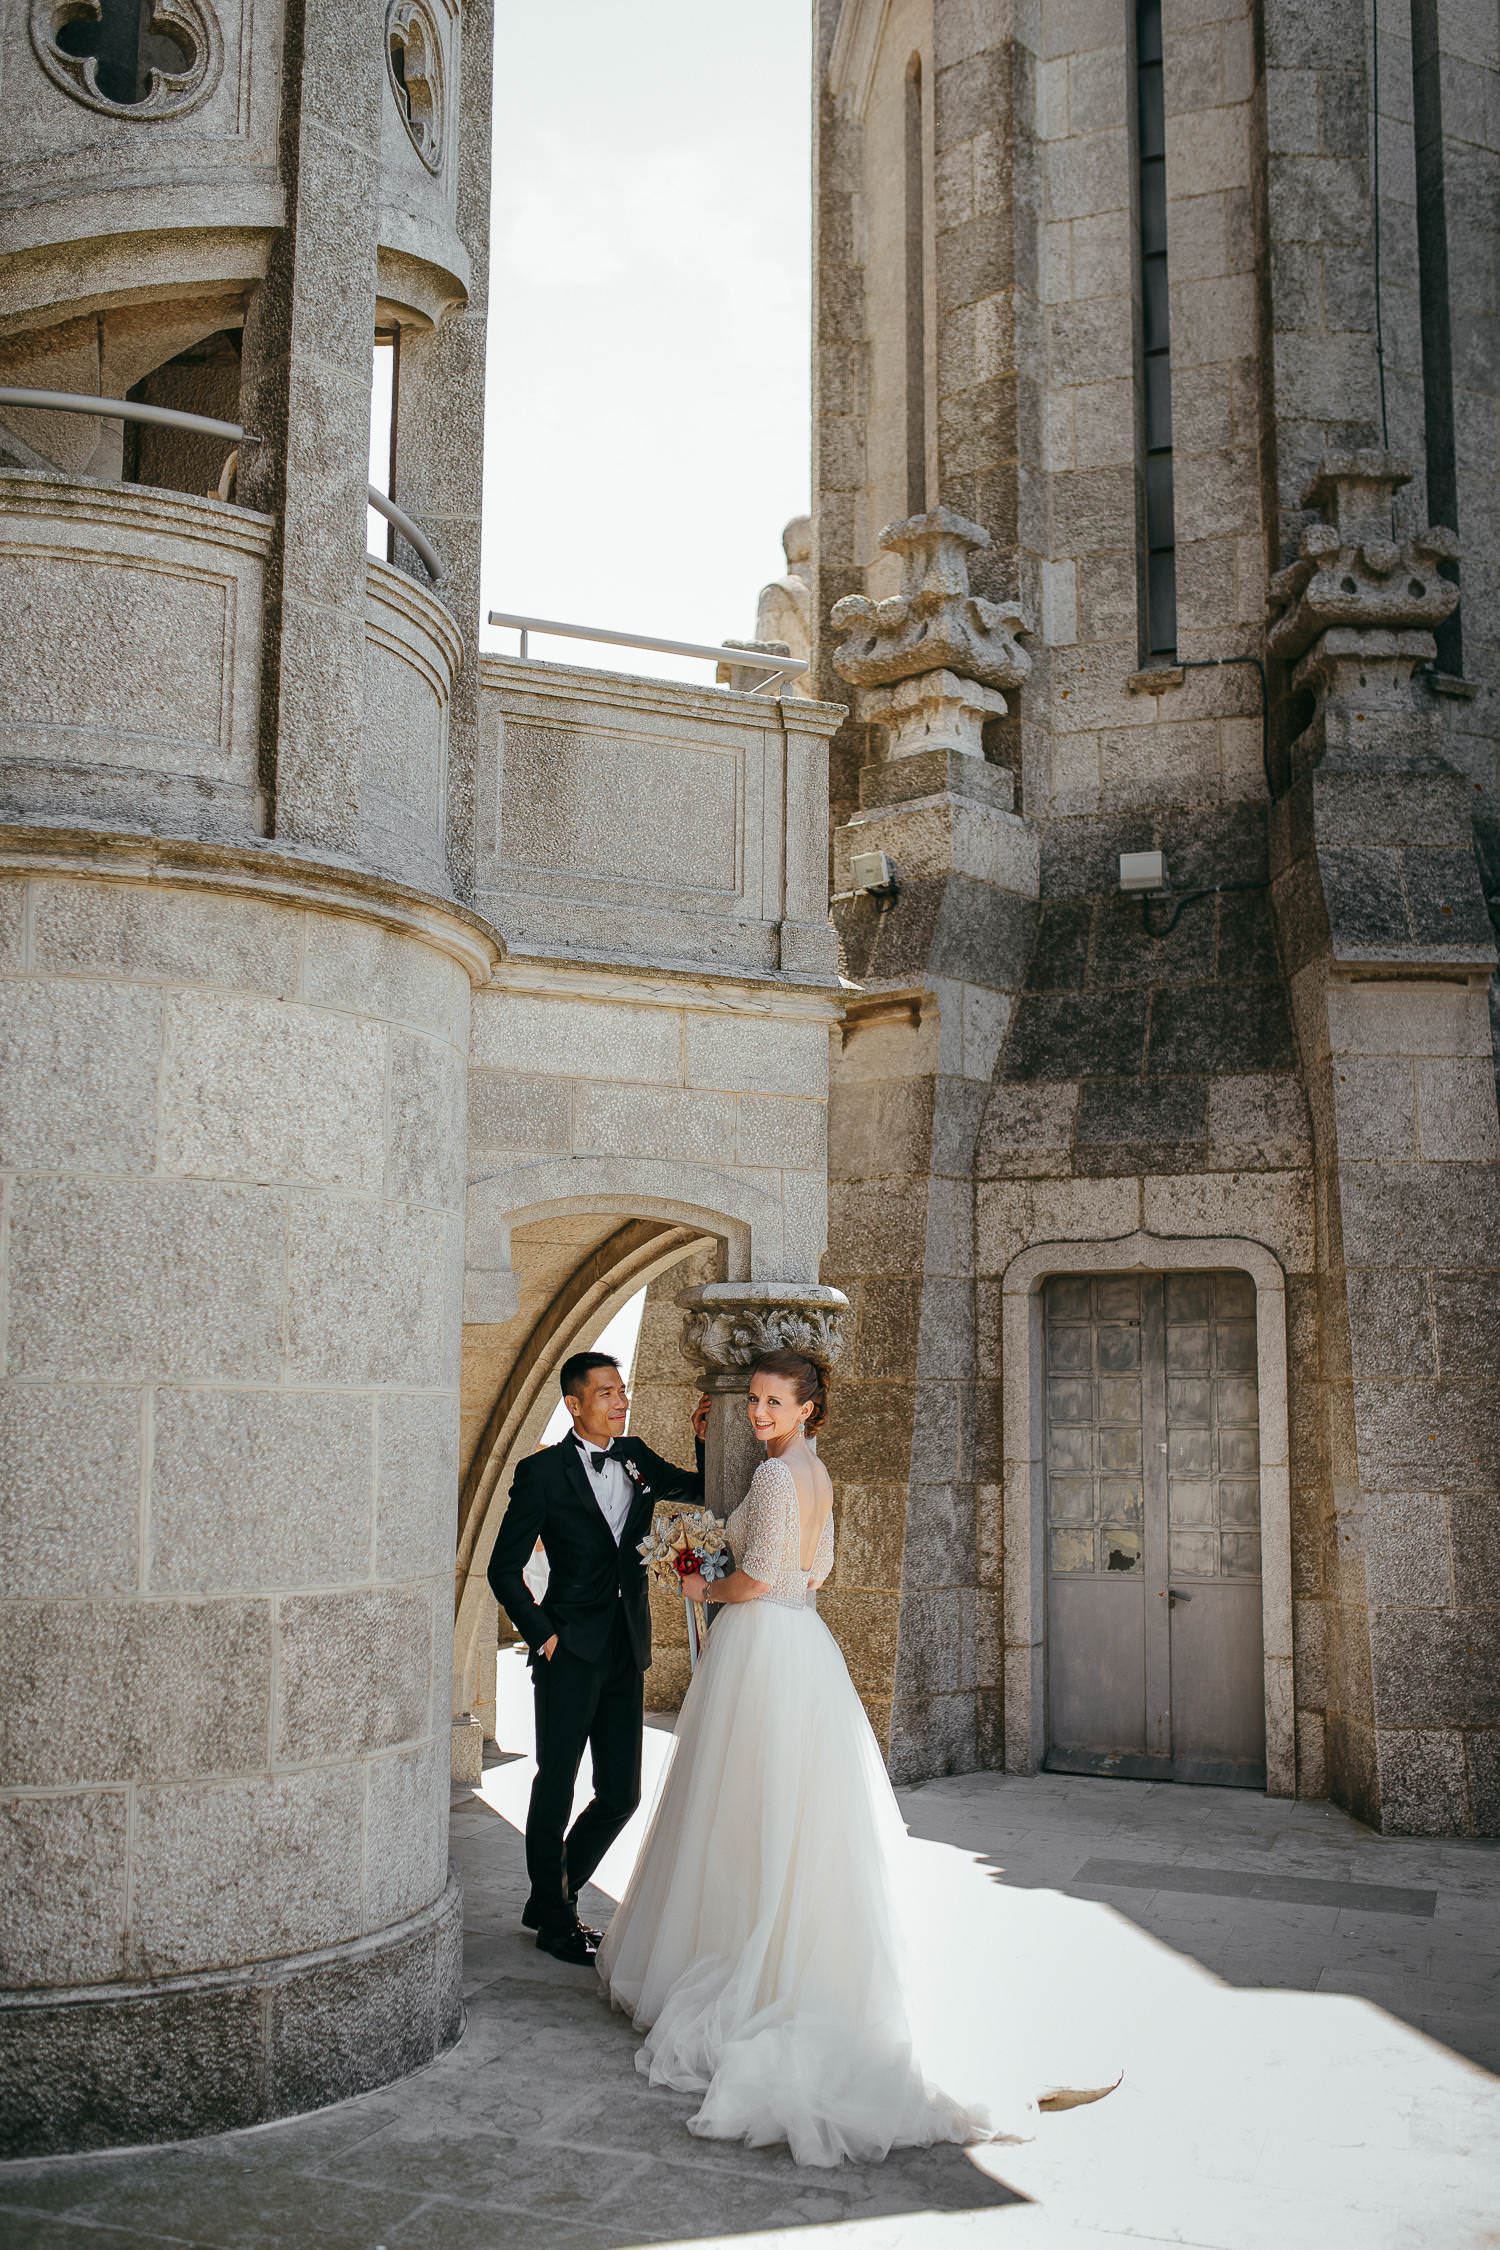 Barcelona documentary wedding photographer. Tibidabo wedding